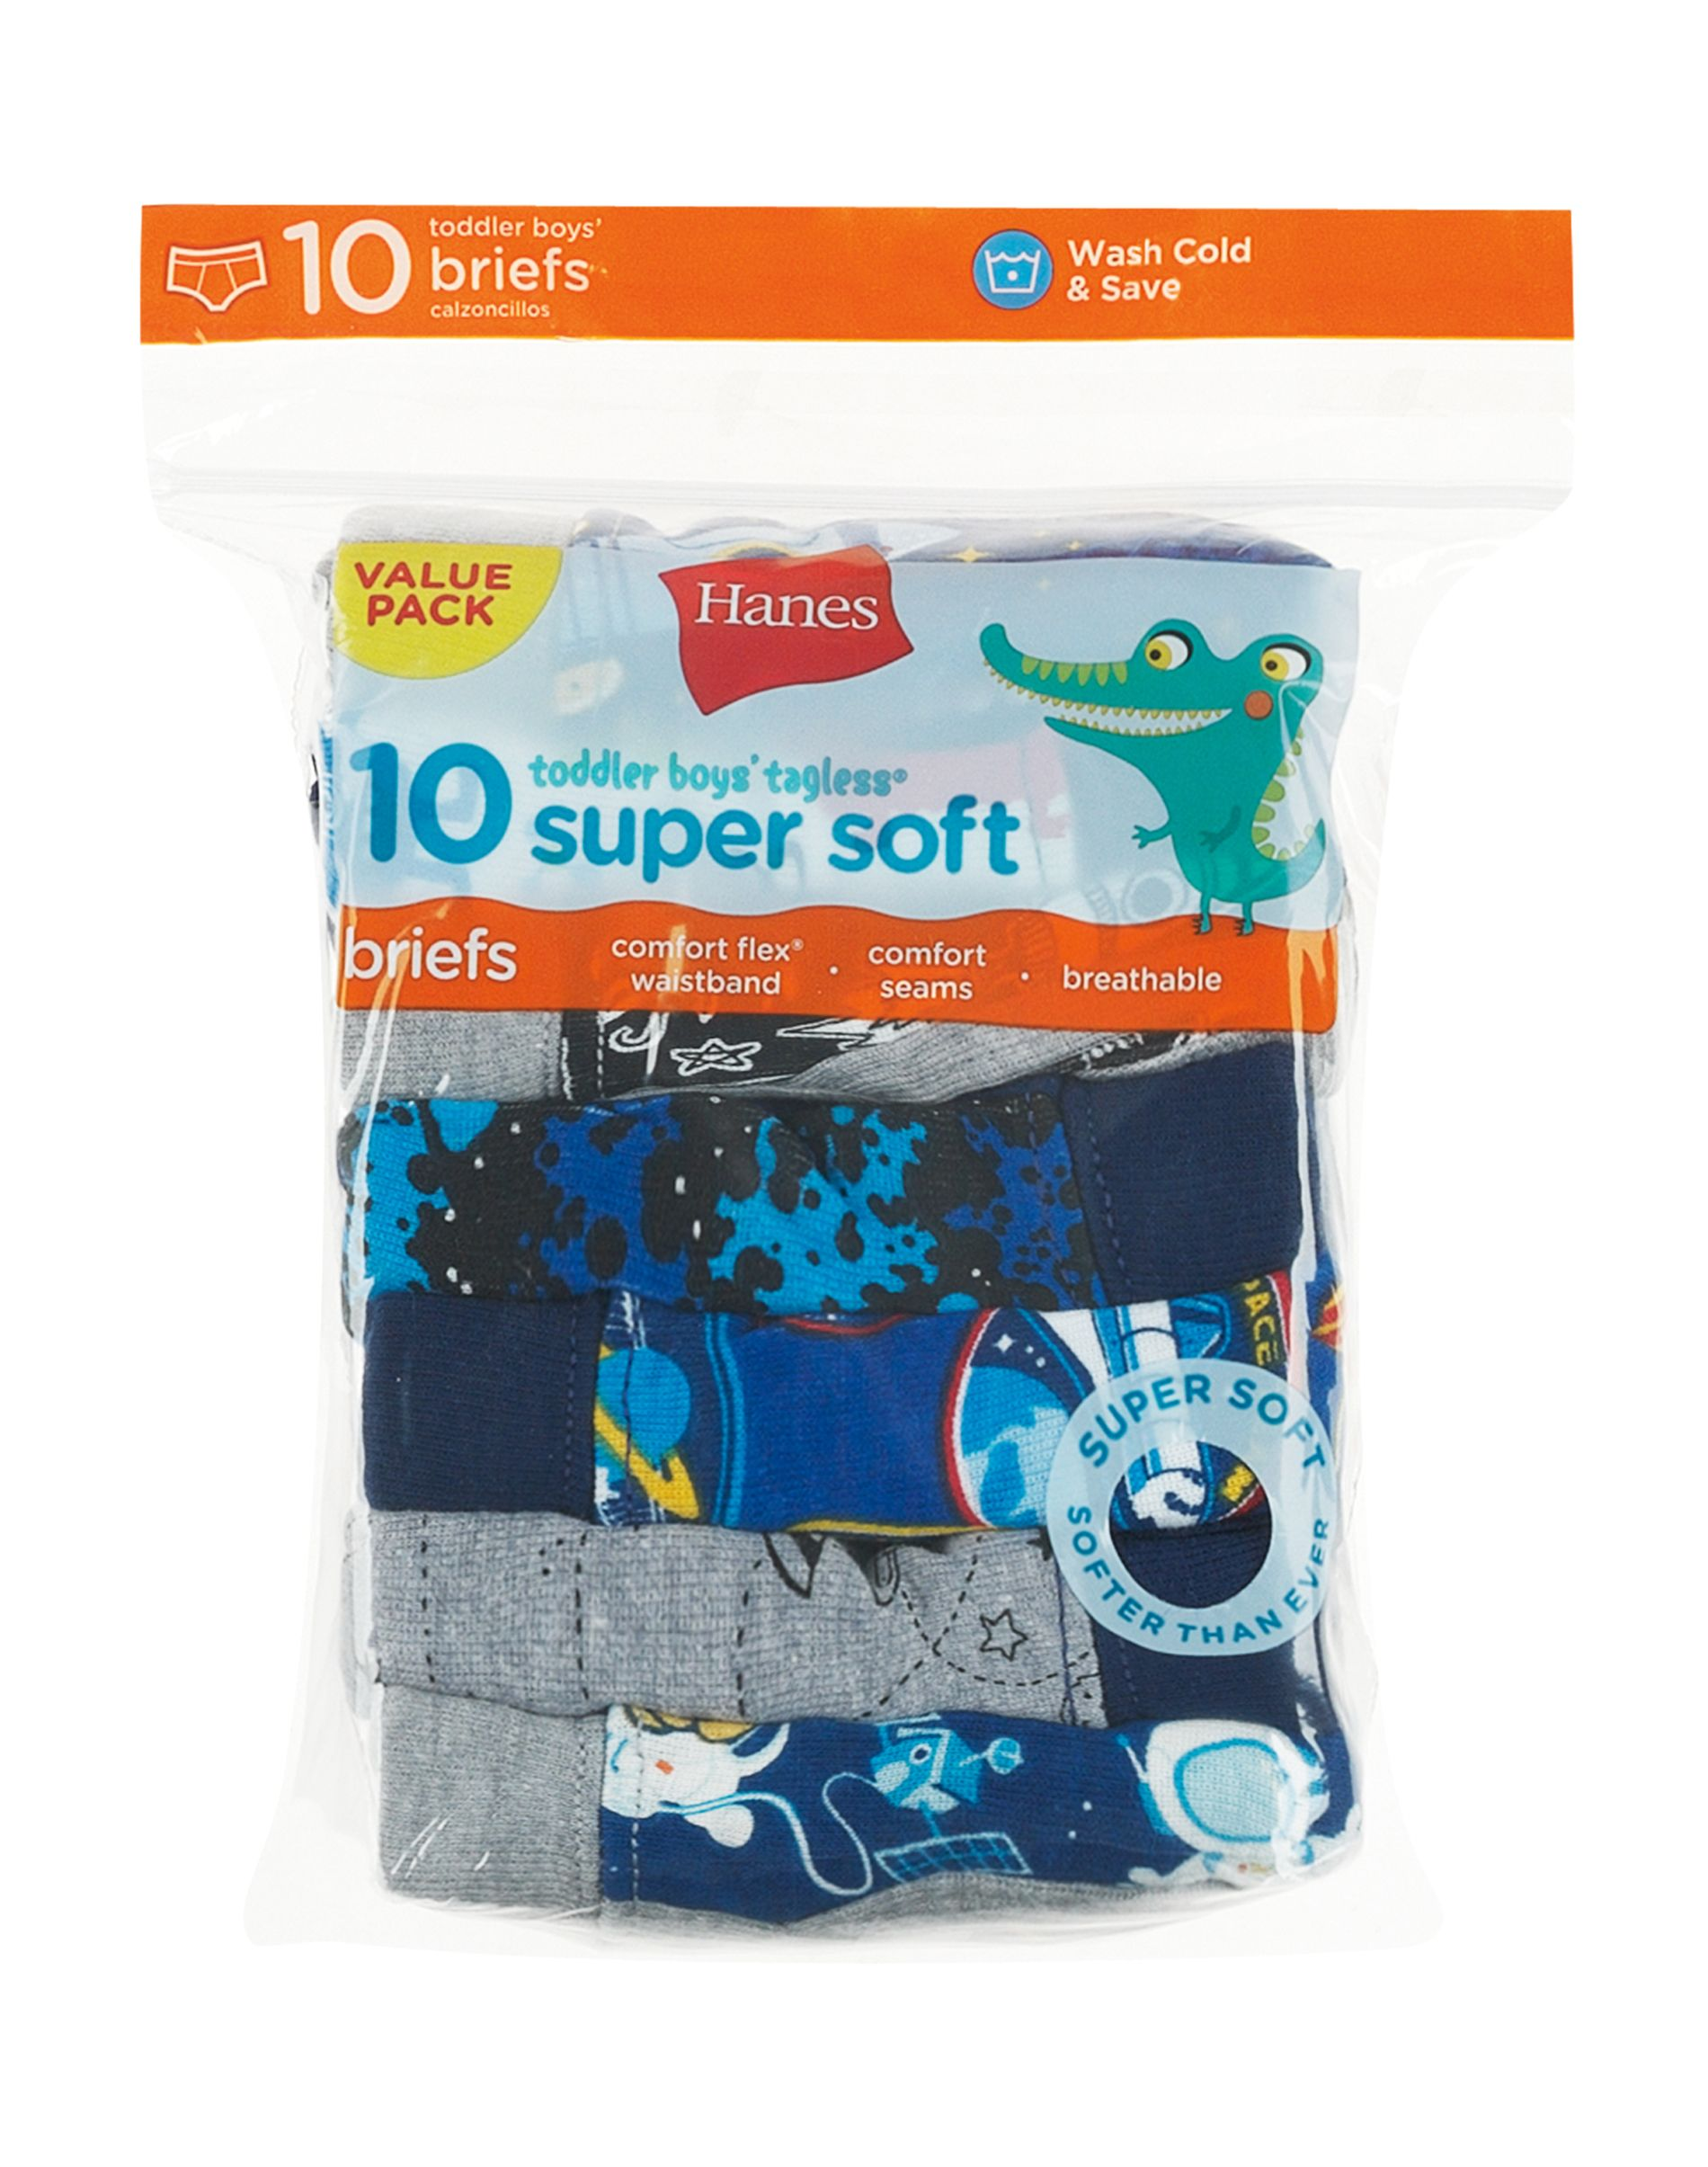 hanes toddler boys' briefs with comfortsoft waistband 10-pack youth Hanes